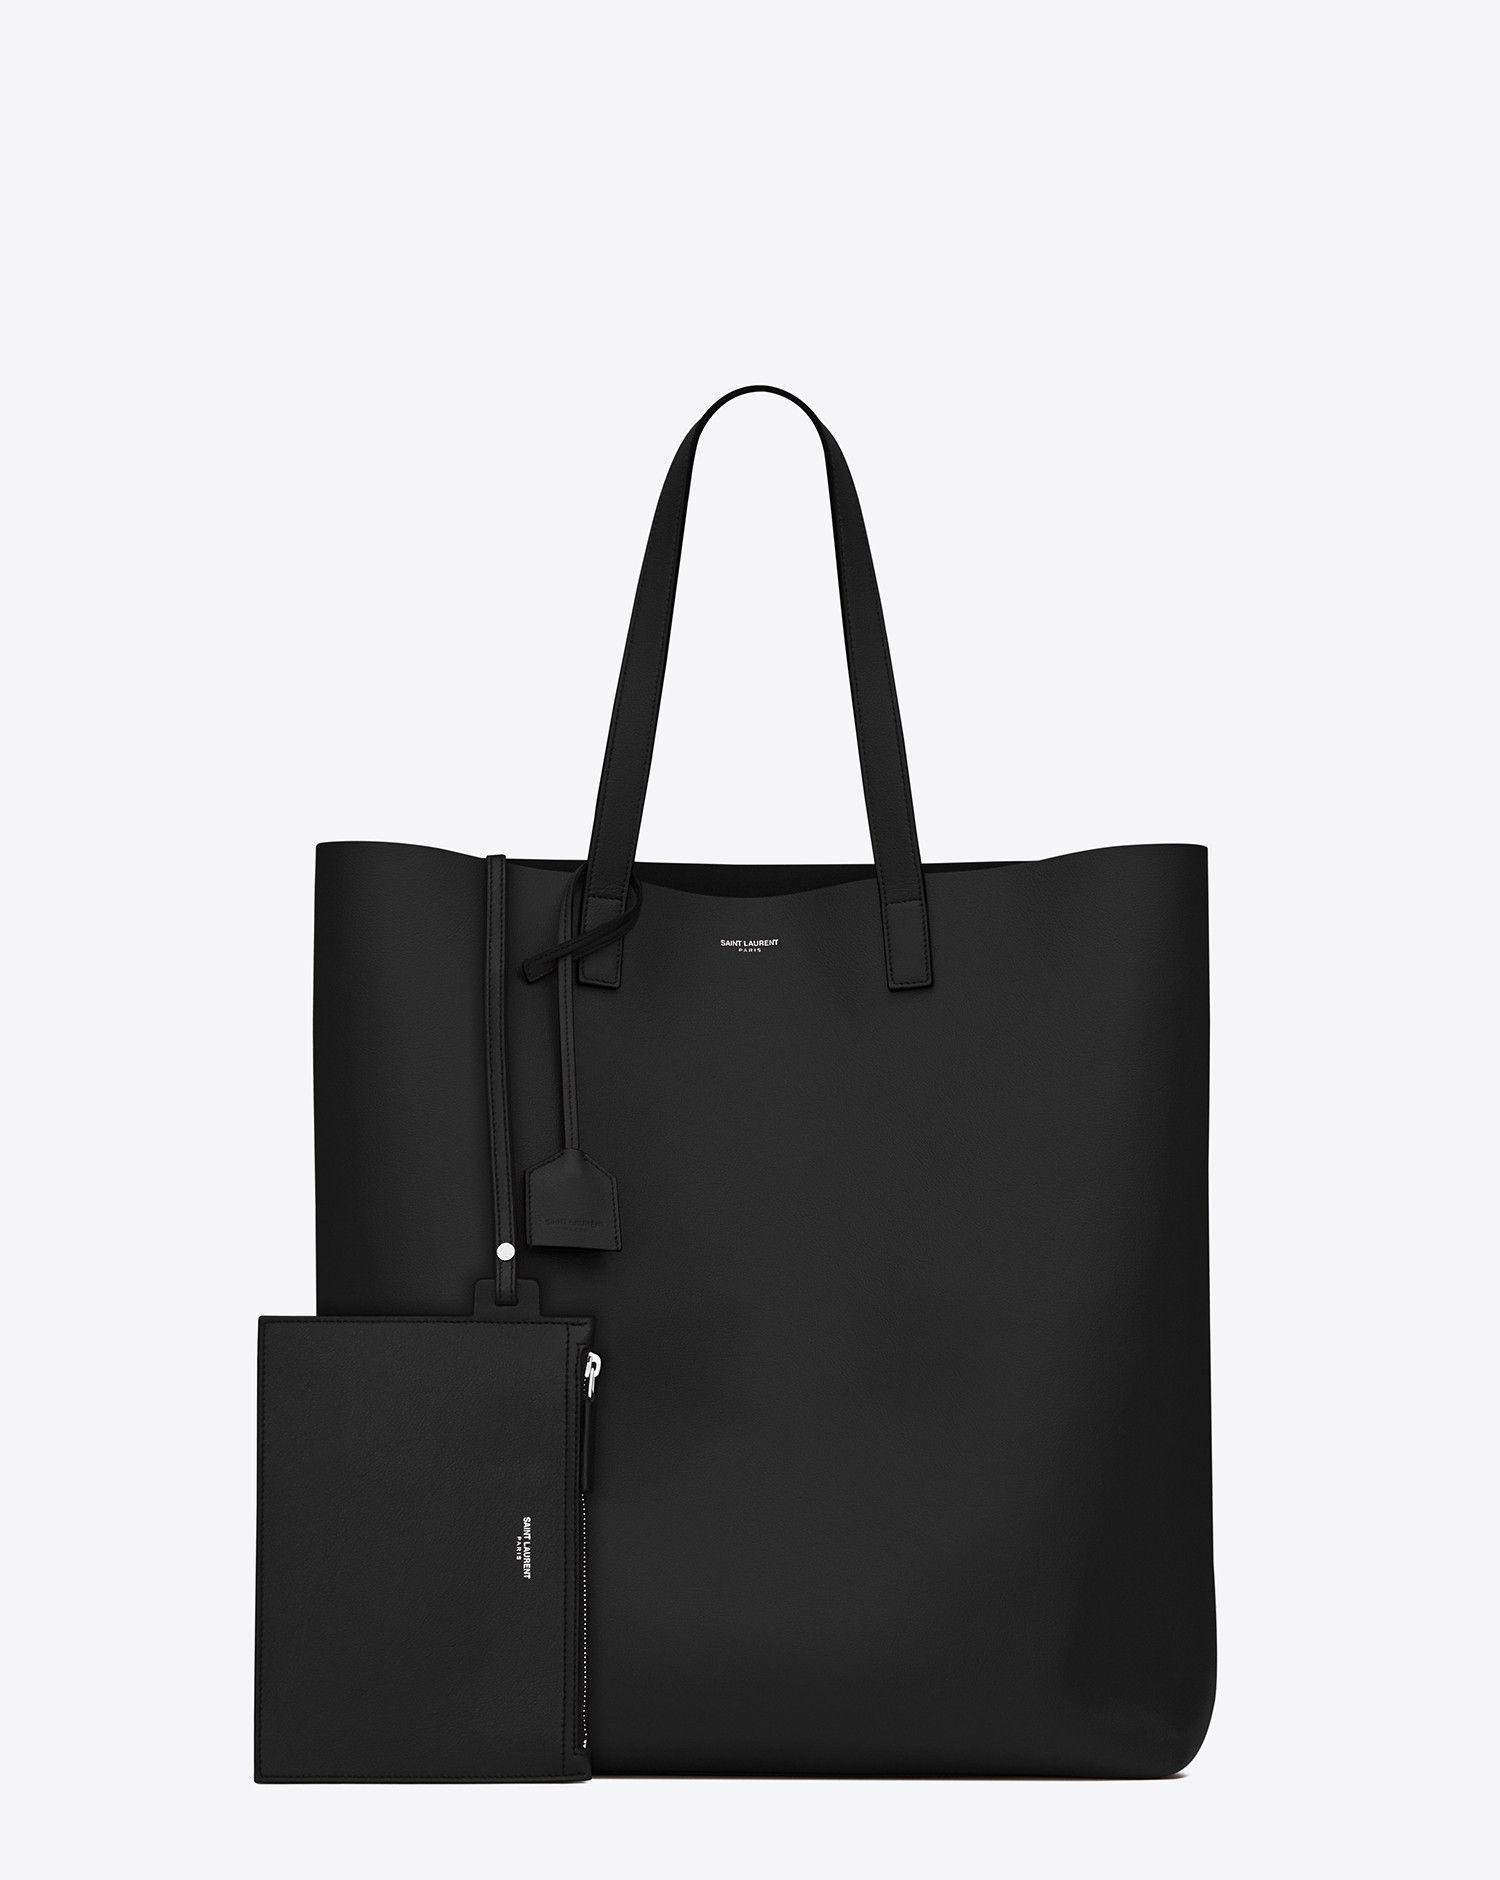 Saint Laurent Totes: discover the selection and shop online on YSL.com